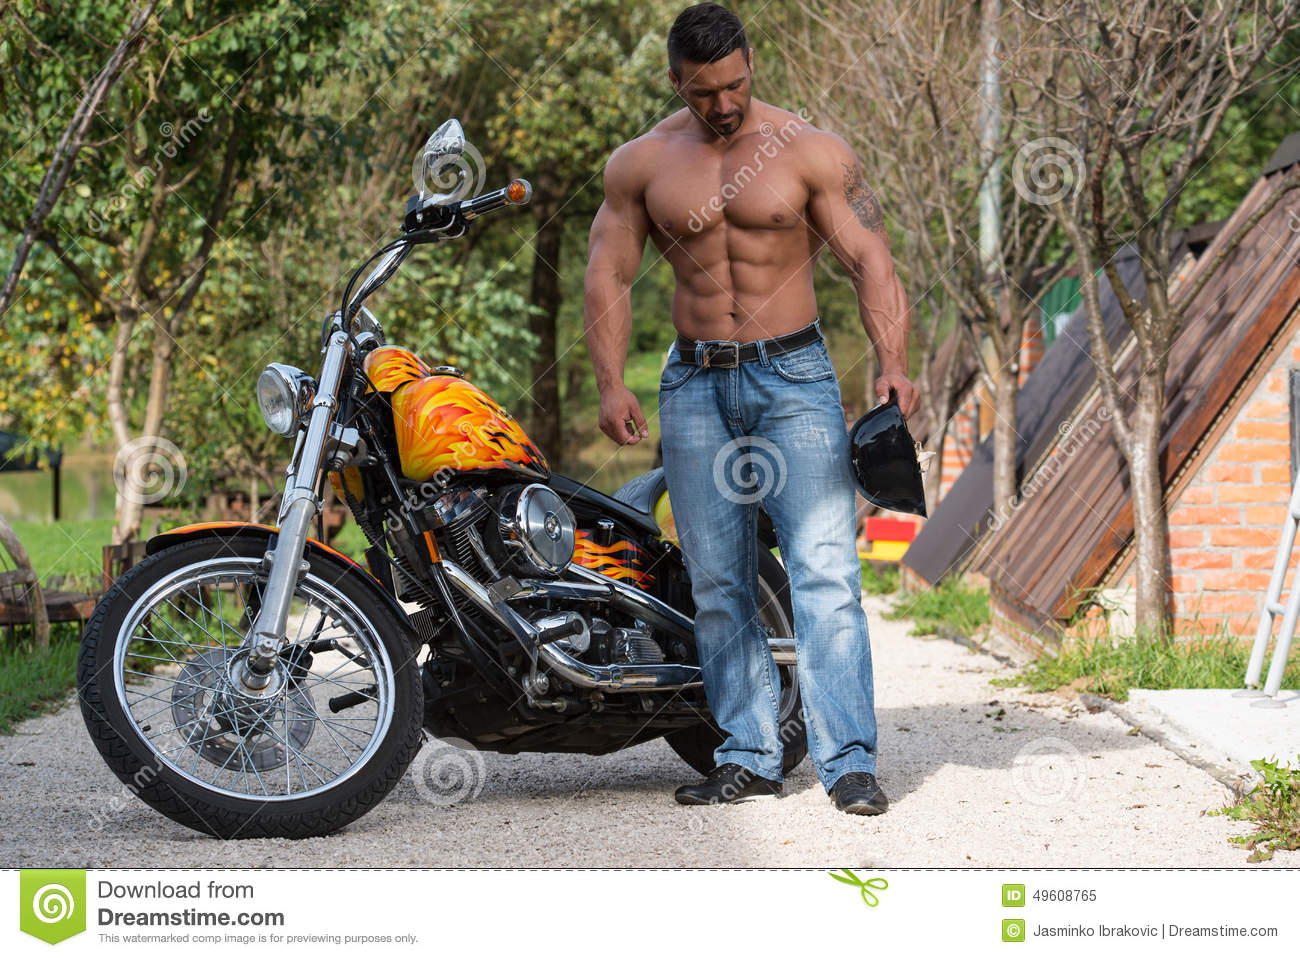 Attractive Bodybuilder And Motorcycle Stock Photo - Image